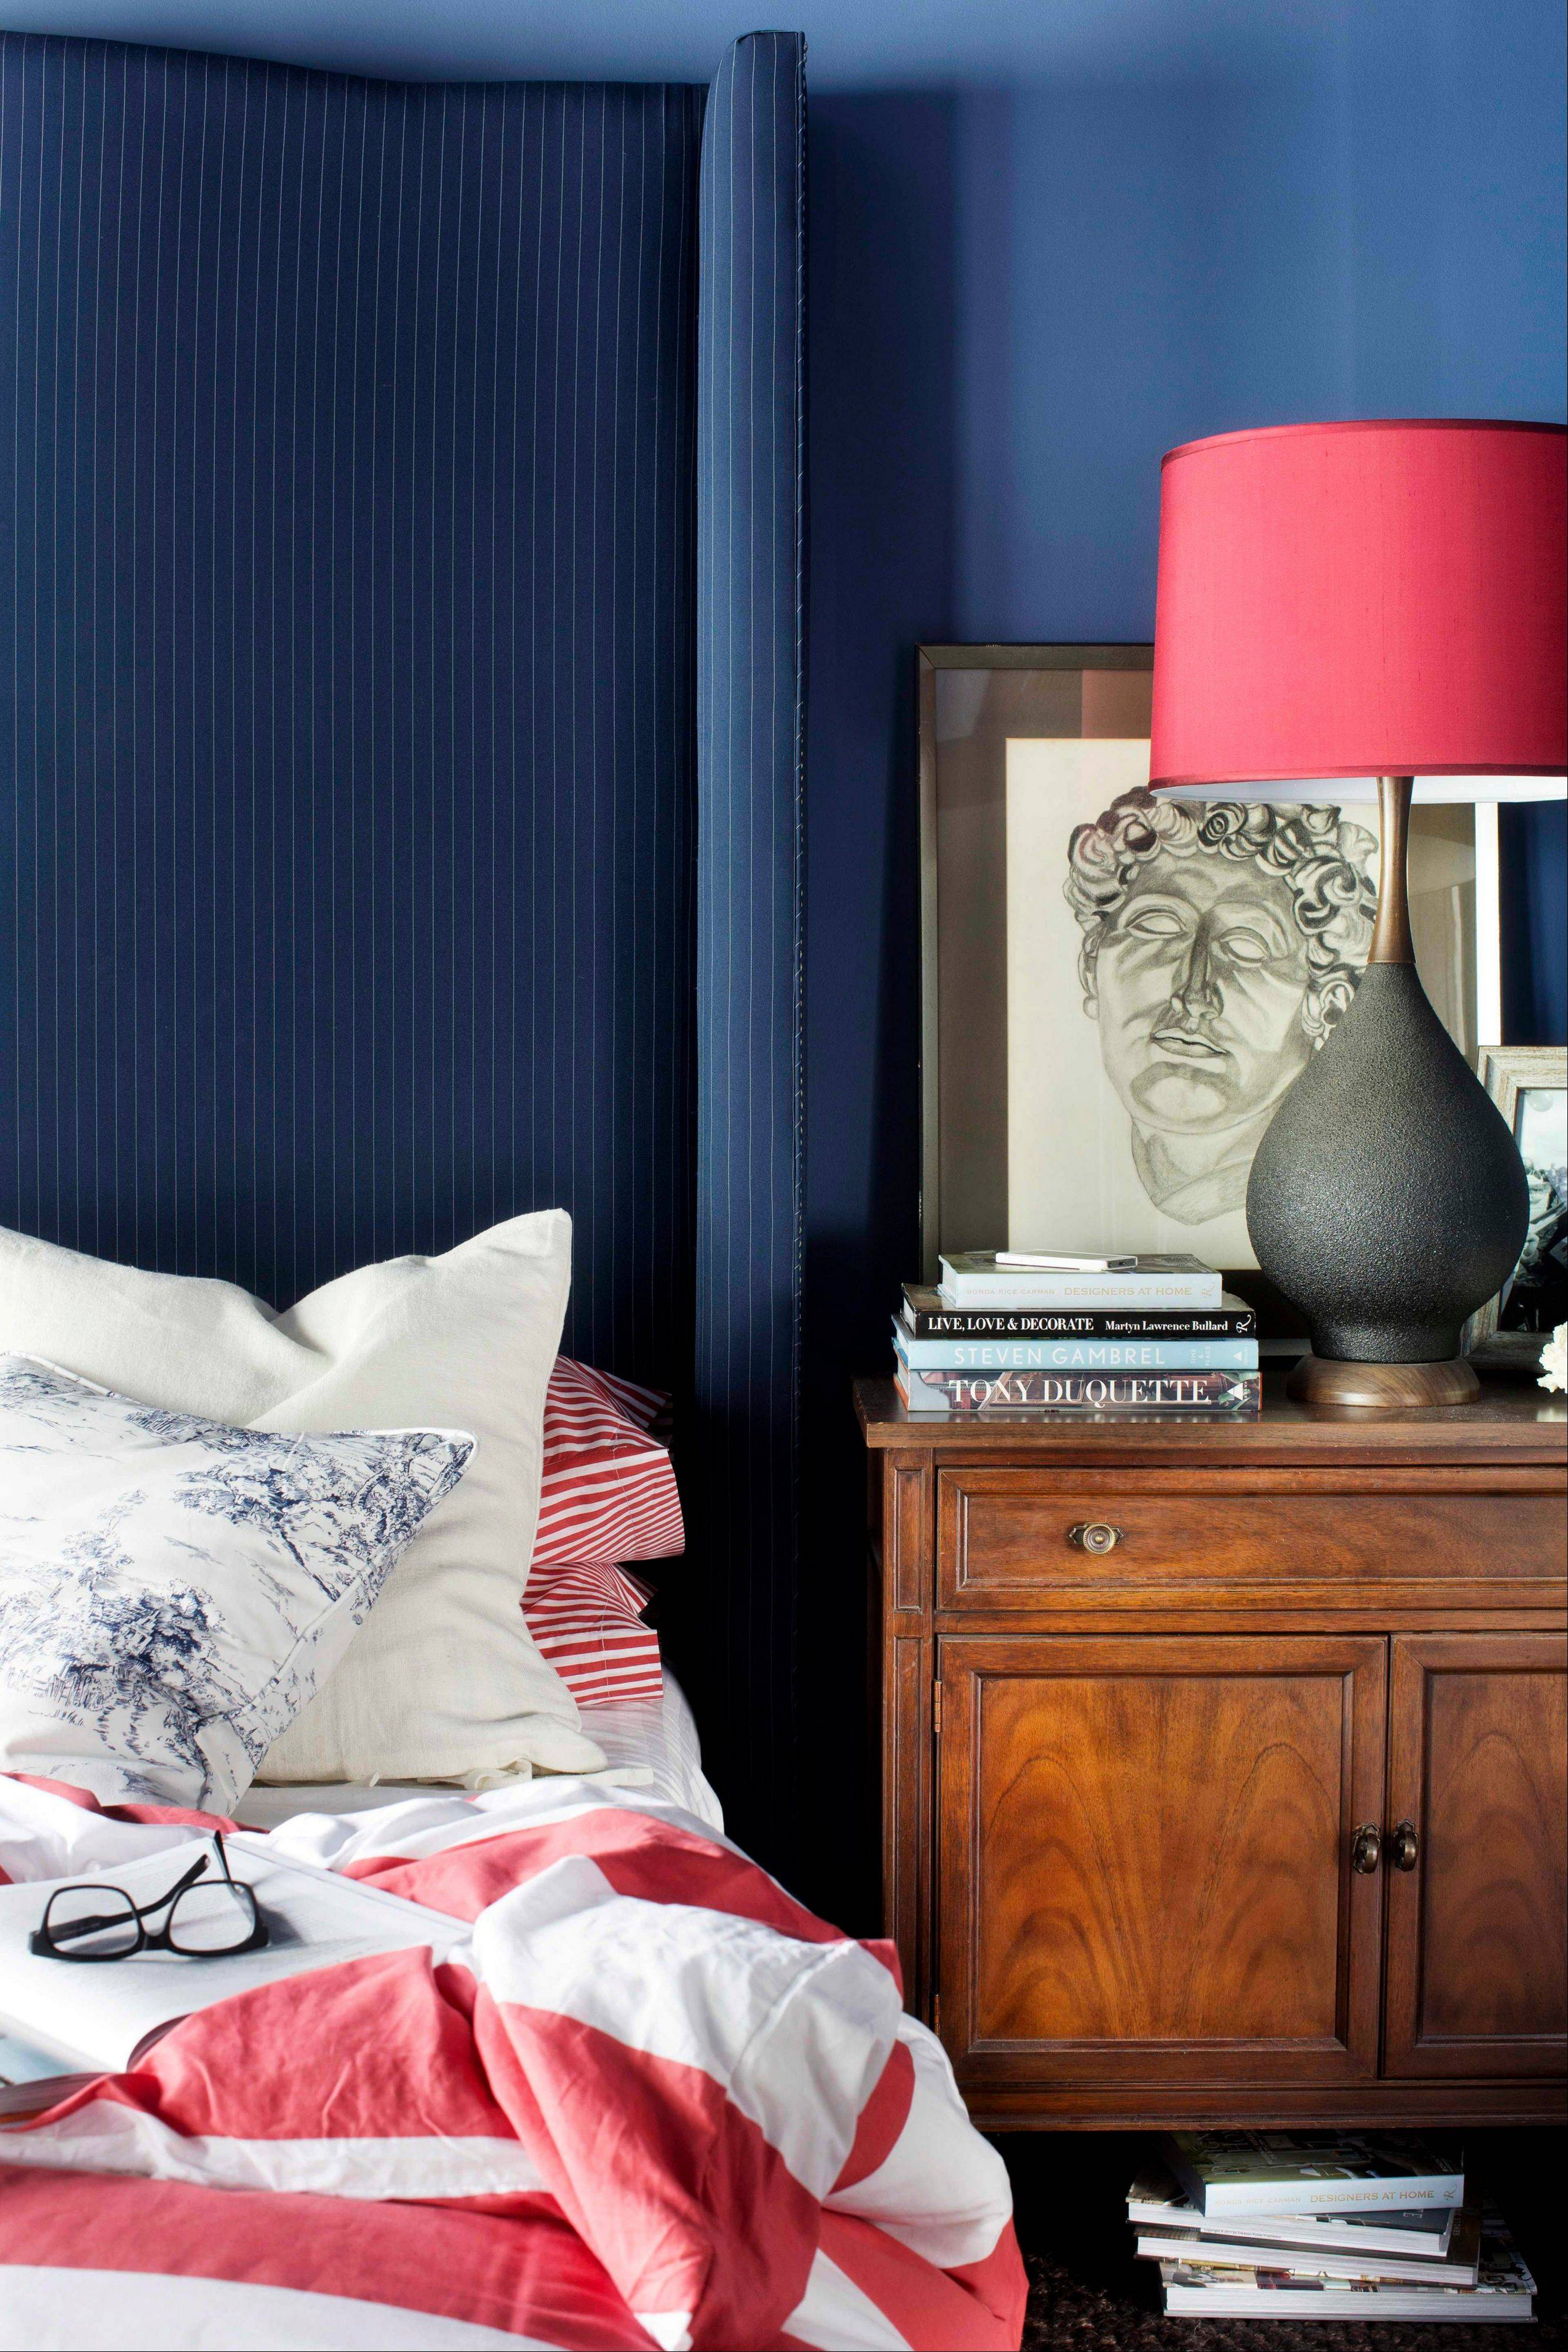 This bedroom designed by Brian Patrick Flynn and featured on HGTV.com demonstrates the designer's use of hefty chests and dressers next to beds rather than small night stands. Flynn suggests chests as an alternative due to their scale, especially in bedrooms with tall headboards.